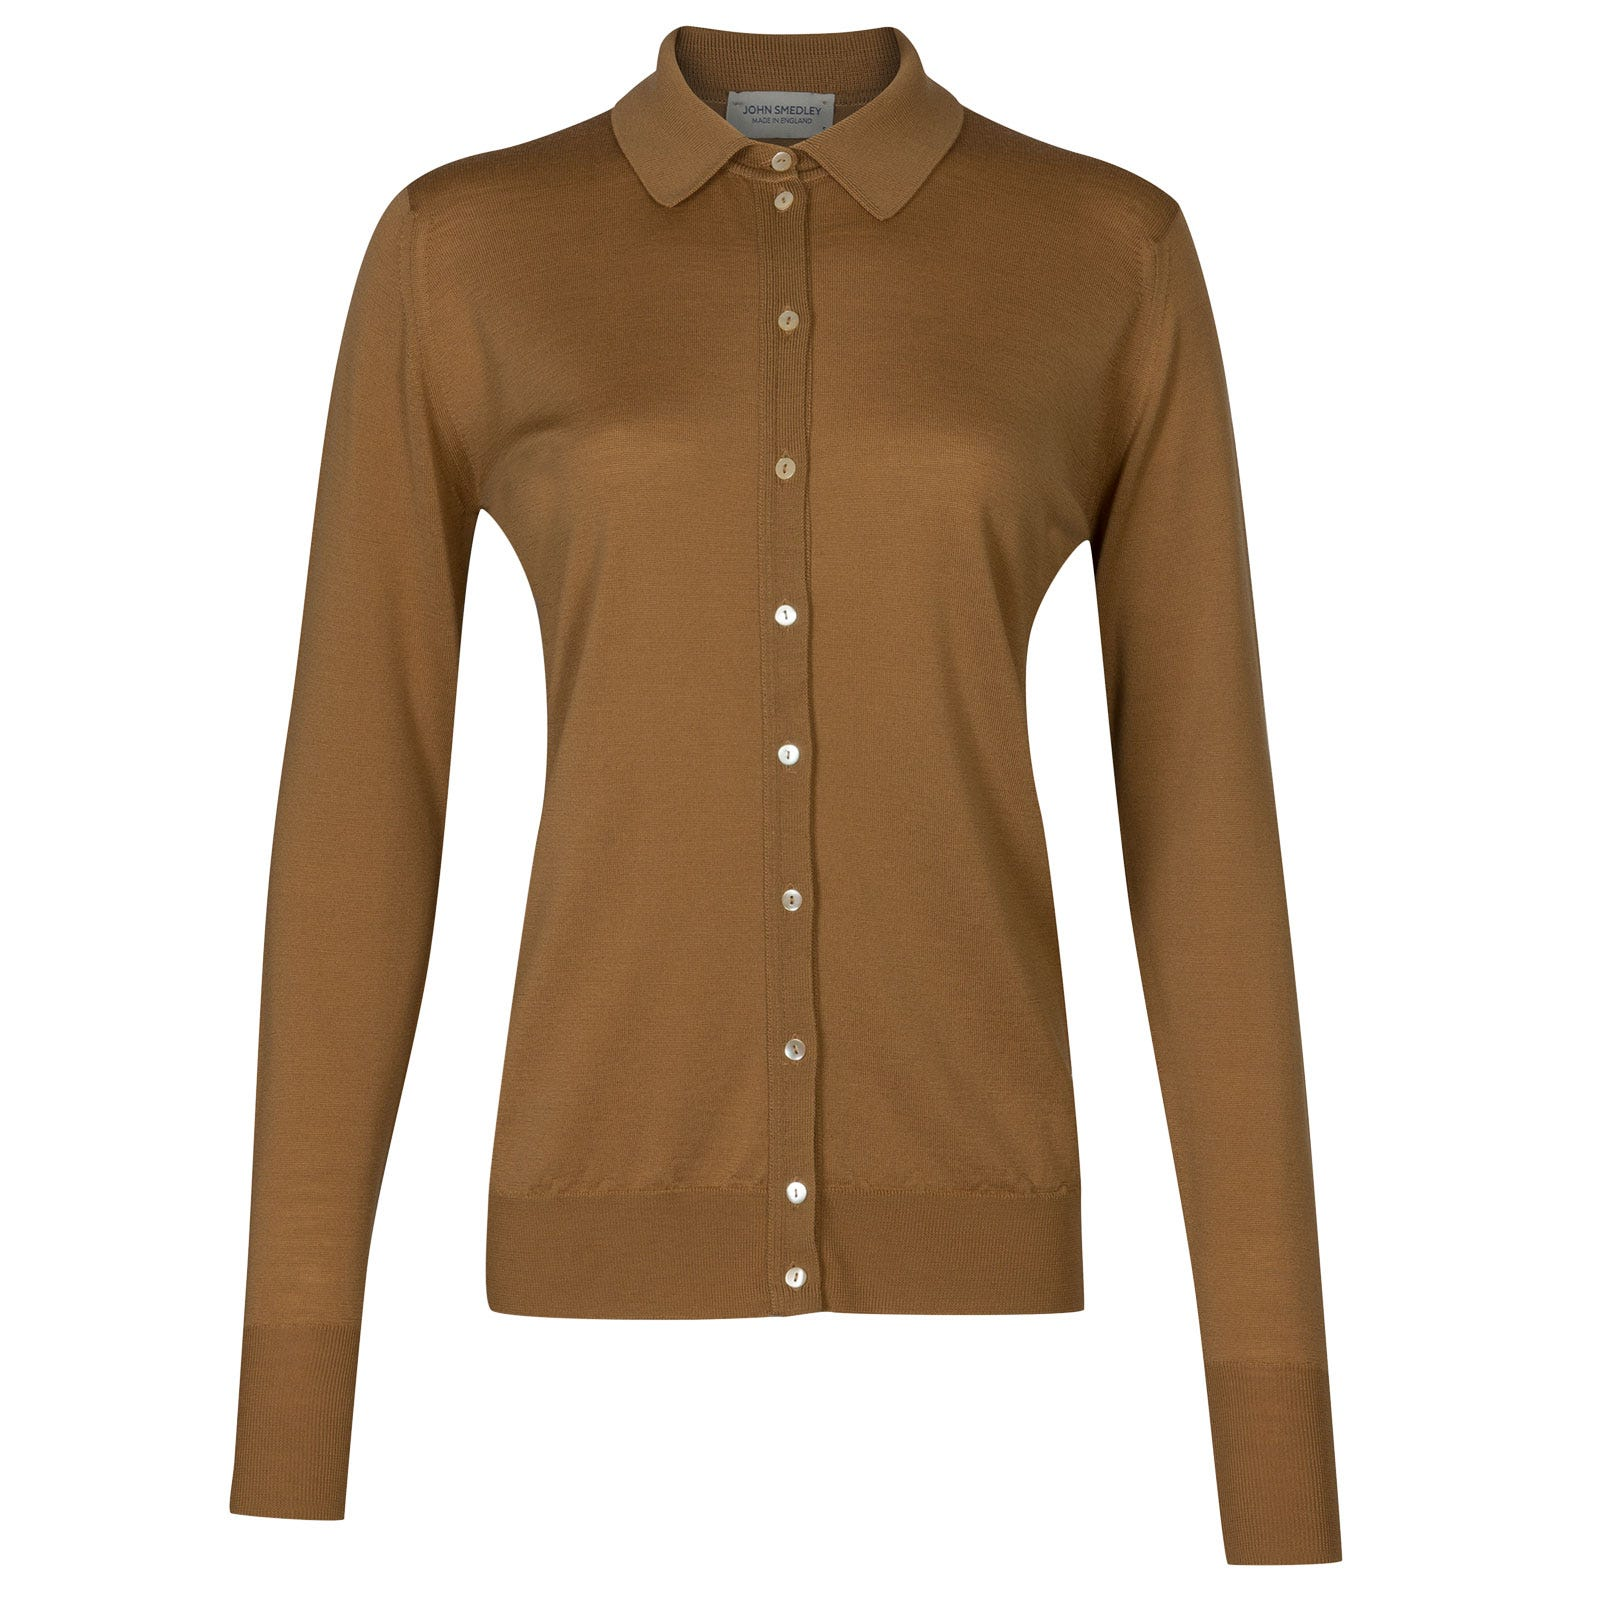 John Smedley bartley Merino Wool Shirt in Camel-S